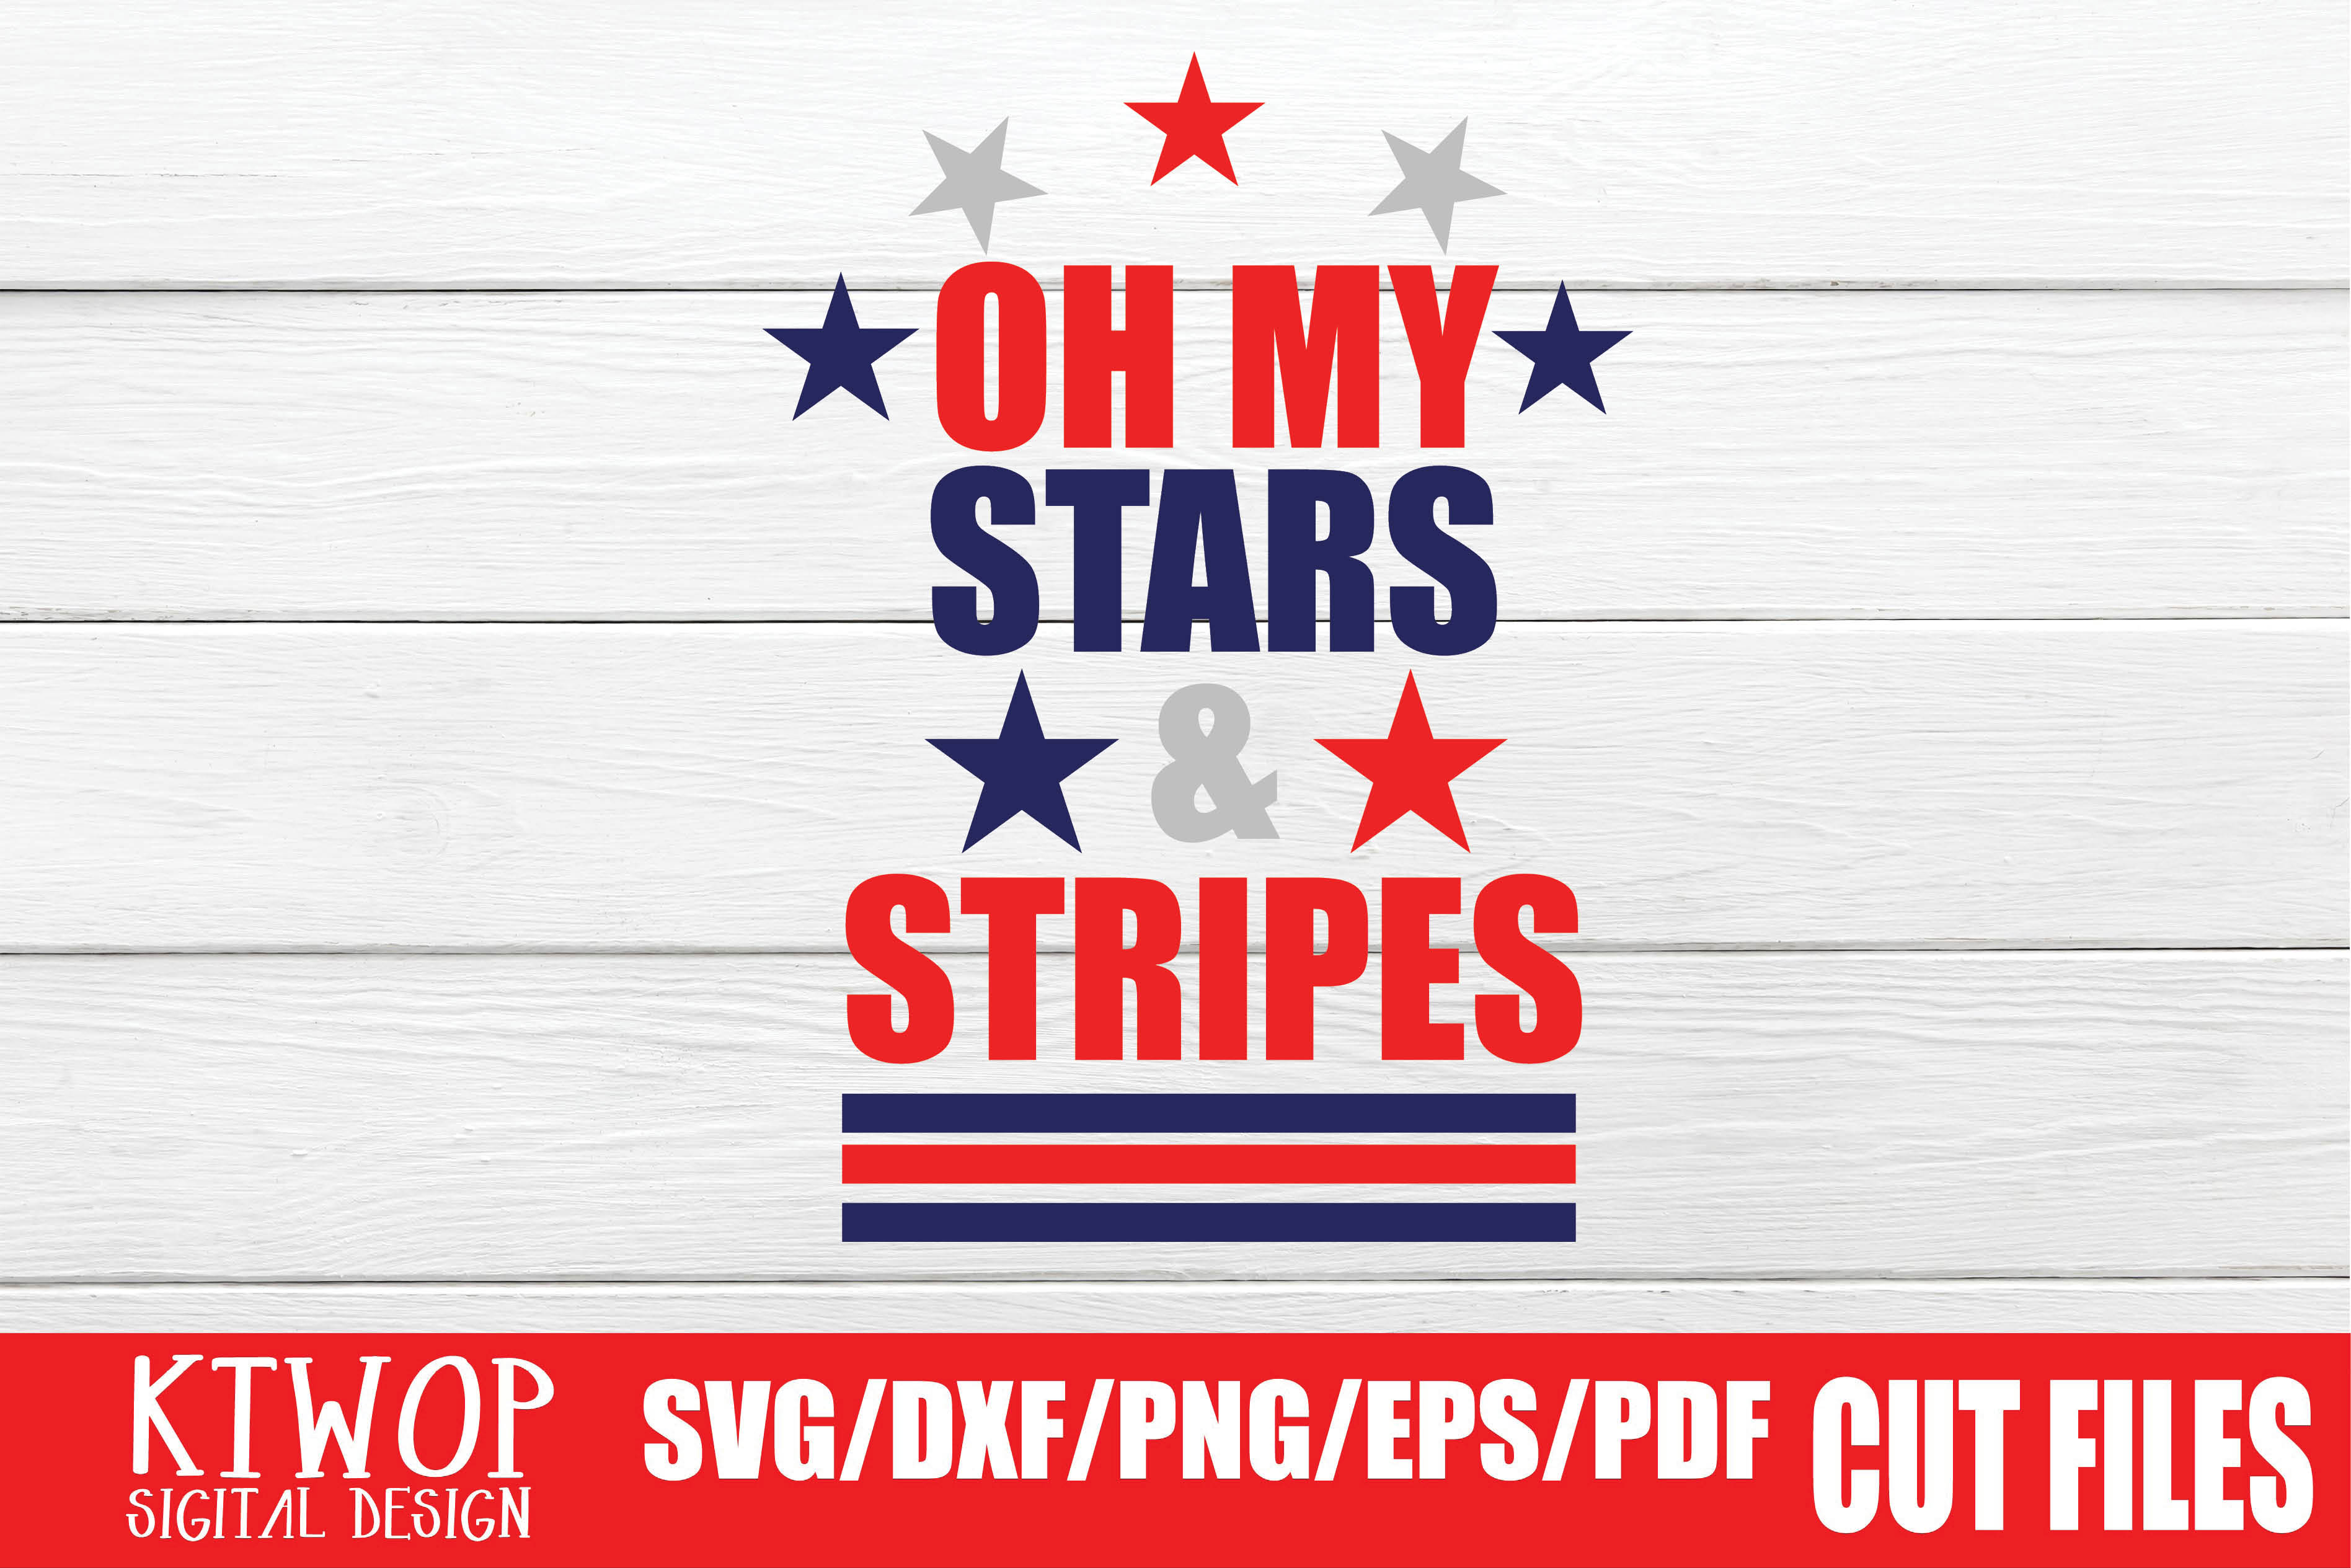 Download Free Oh My Stars And Stripes Graphic By Ktwop Creative Fabrica for Cricut Explore, Silhouette and other cutting machines.